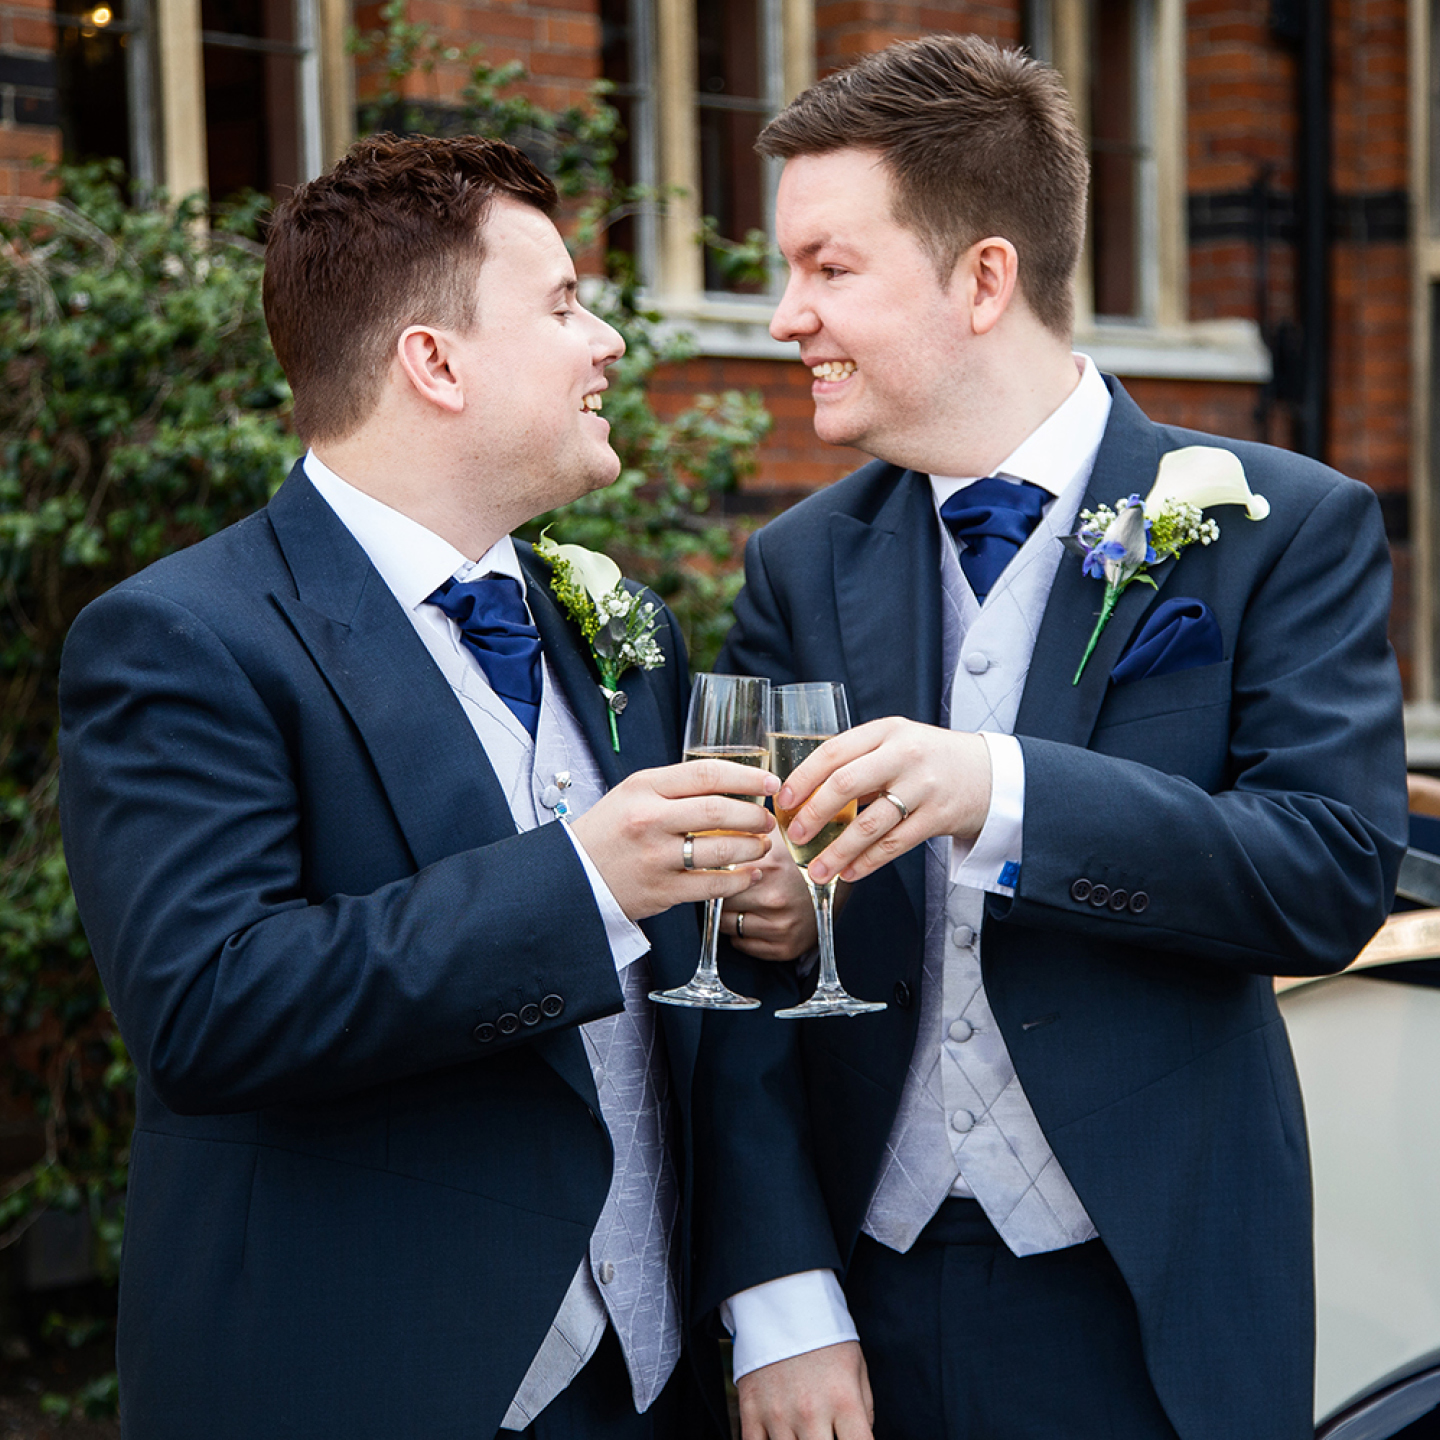 civil partnership marriage, same sex marriage